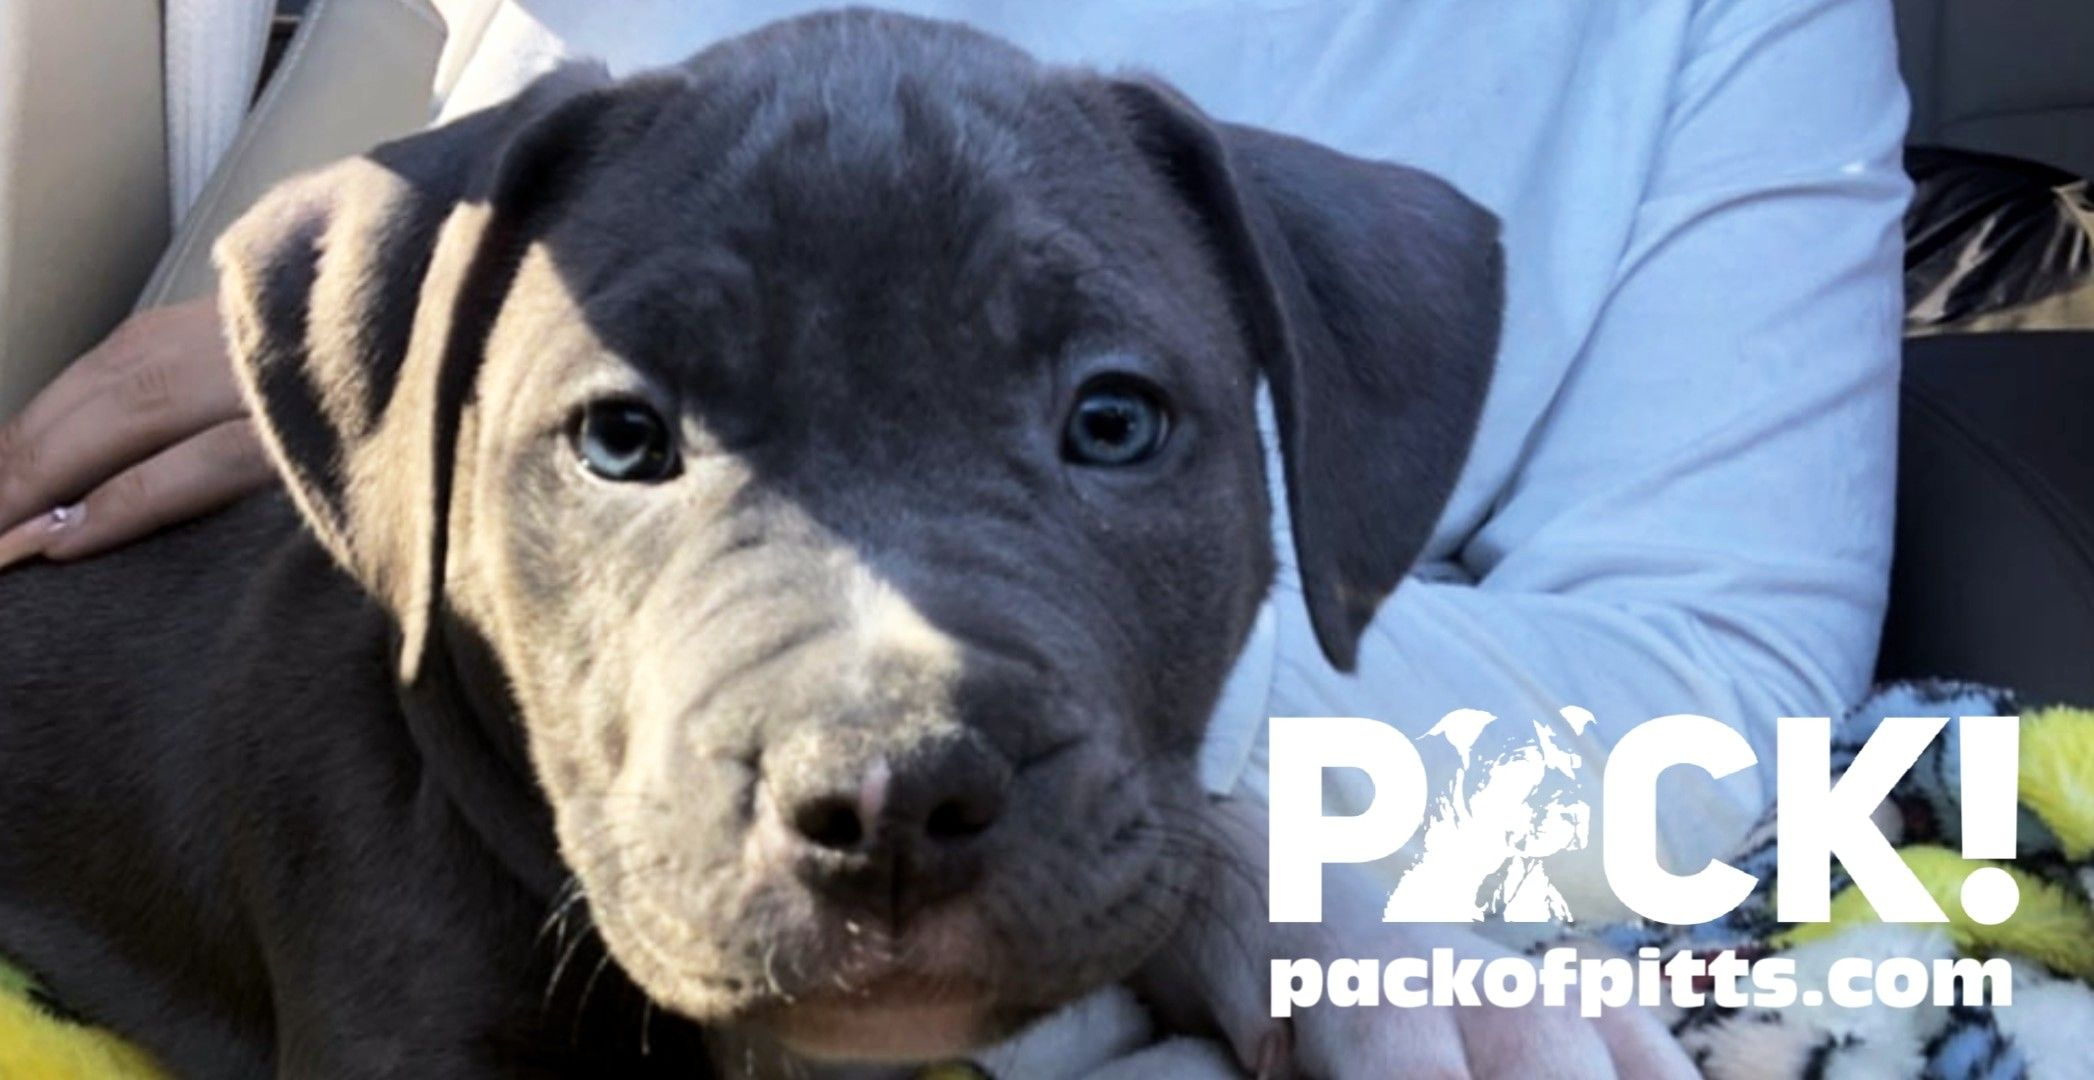 Pack S Banks Pack Of Pitts Kennels Buffalo New York And Niagara Falls Ontario Canada Packofpitts Com In 2020 Pitbull Puppies American Pitbull Terrier Pitbull Terrier